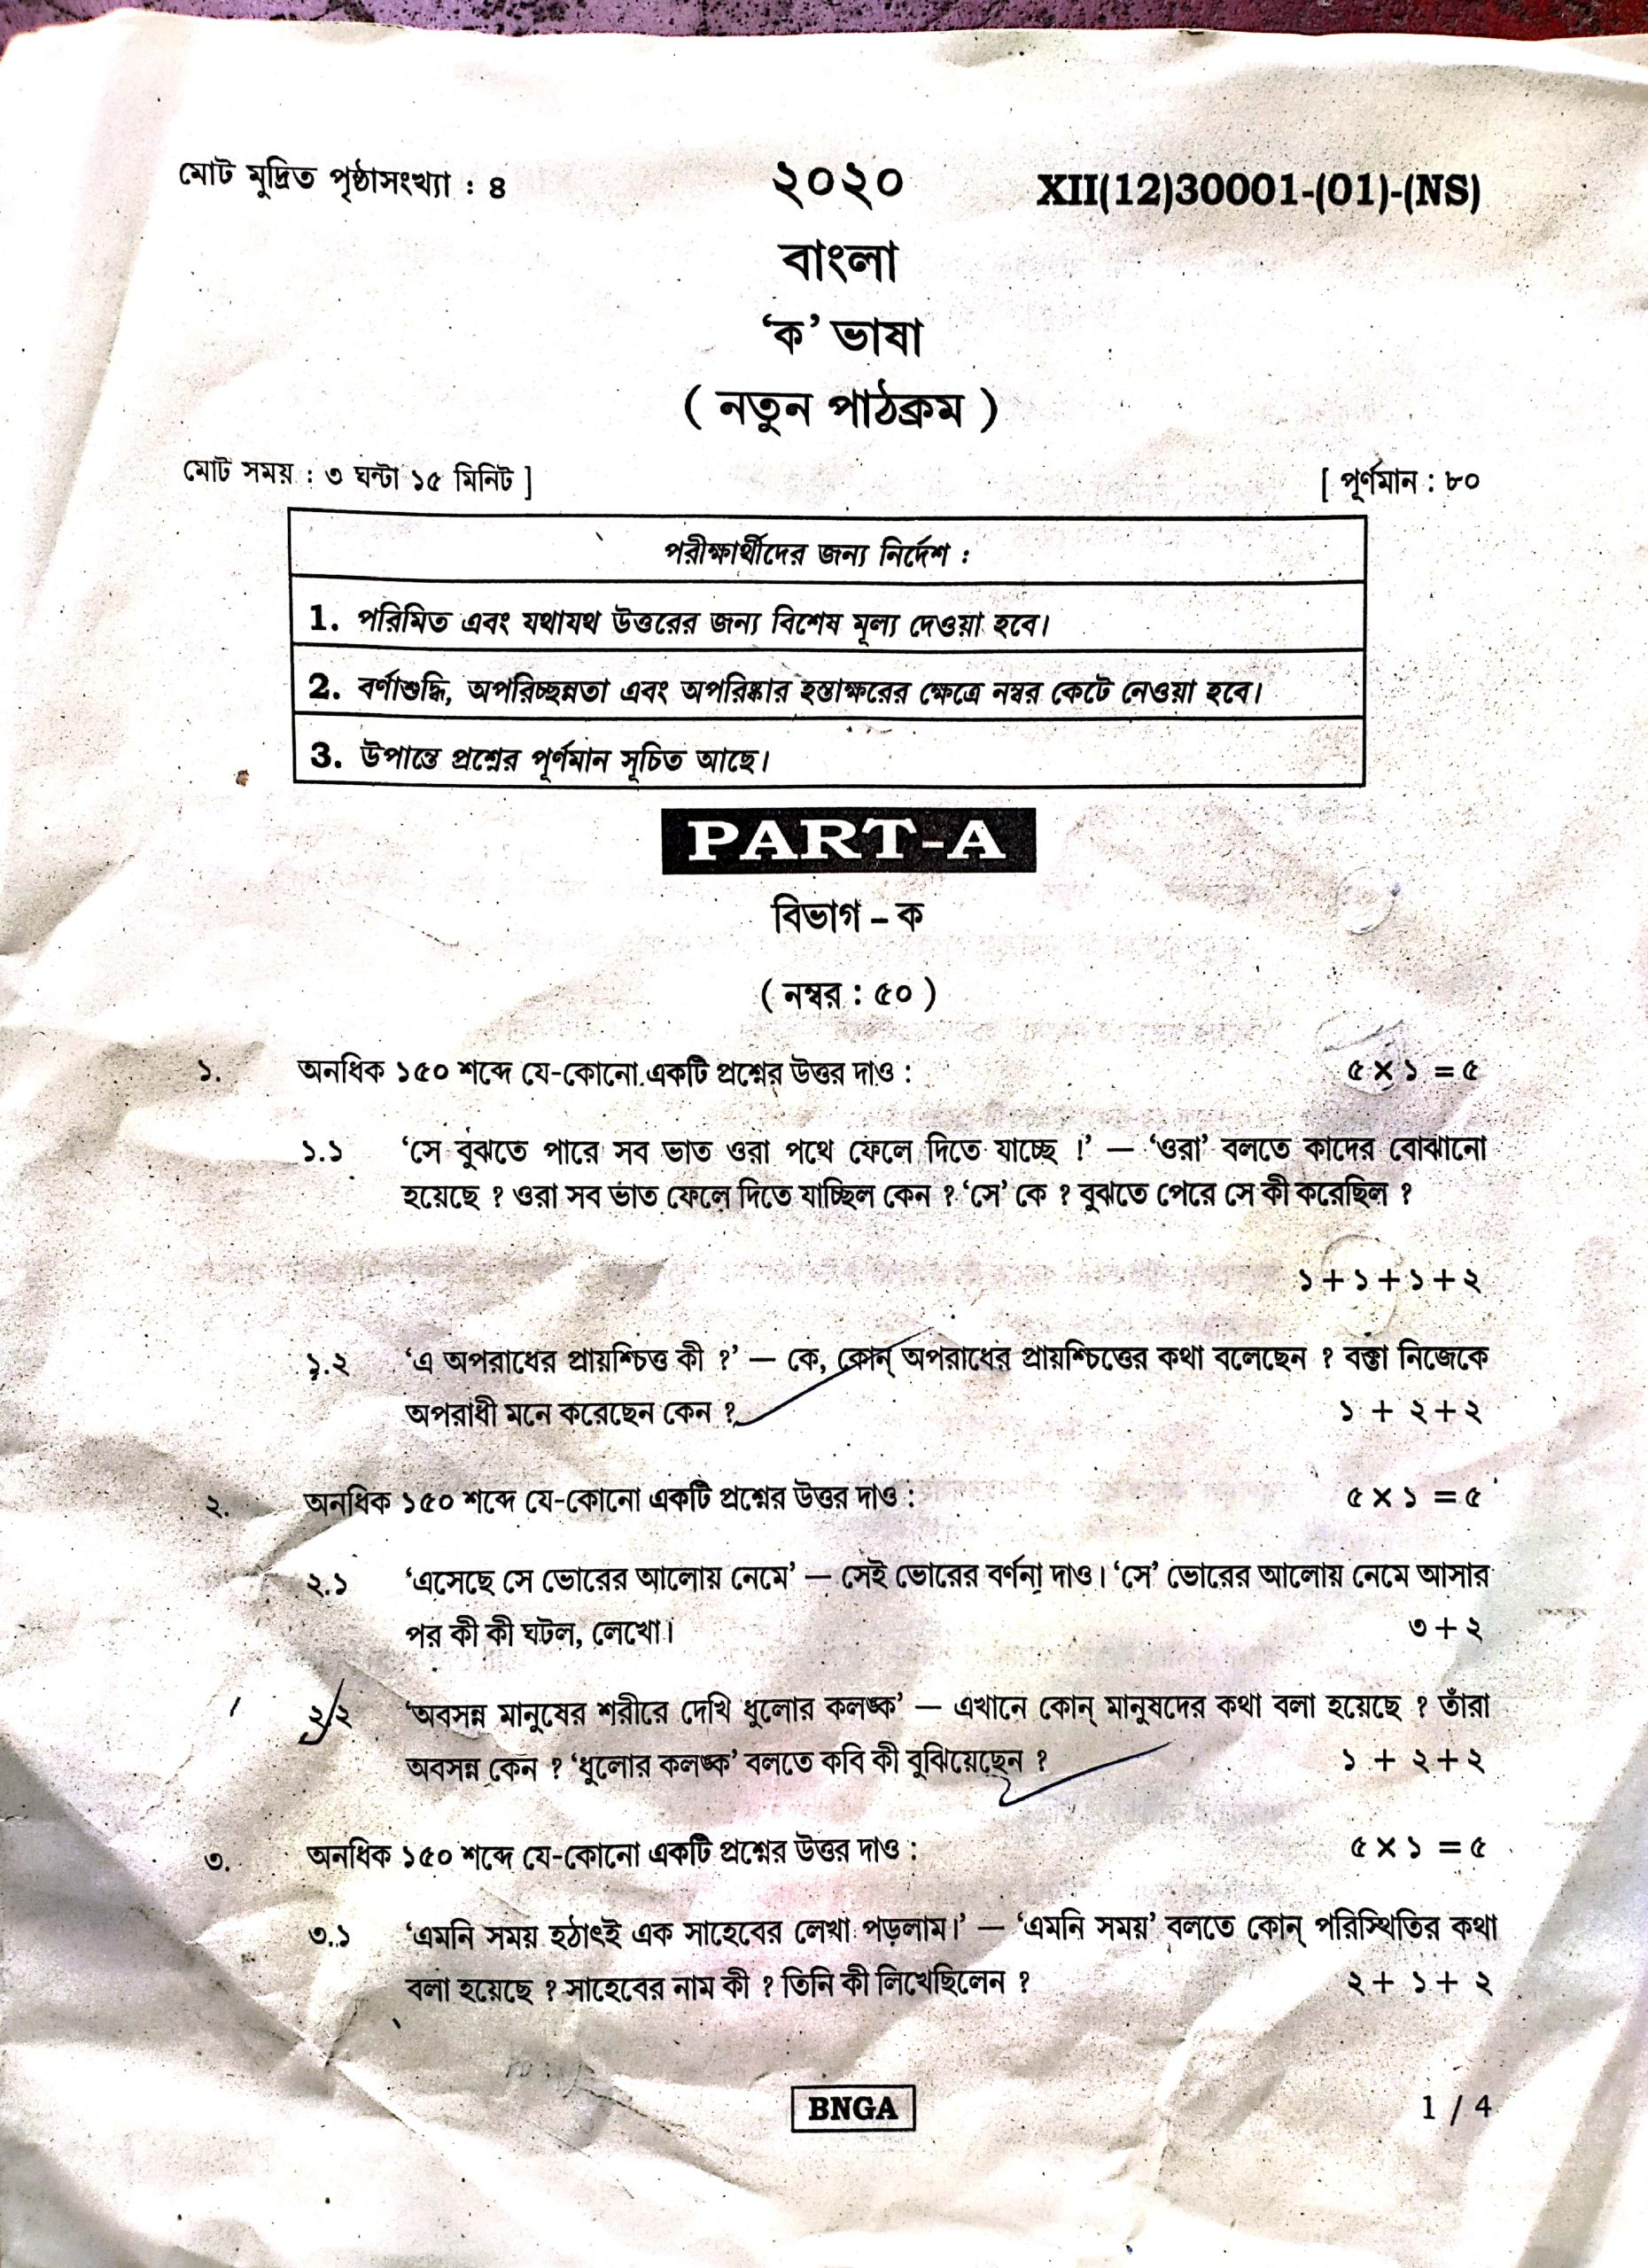 Class 12 Higer Secondery (H.S) 2020 Bengali Qustion Paper.